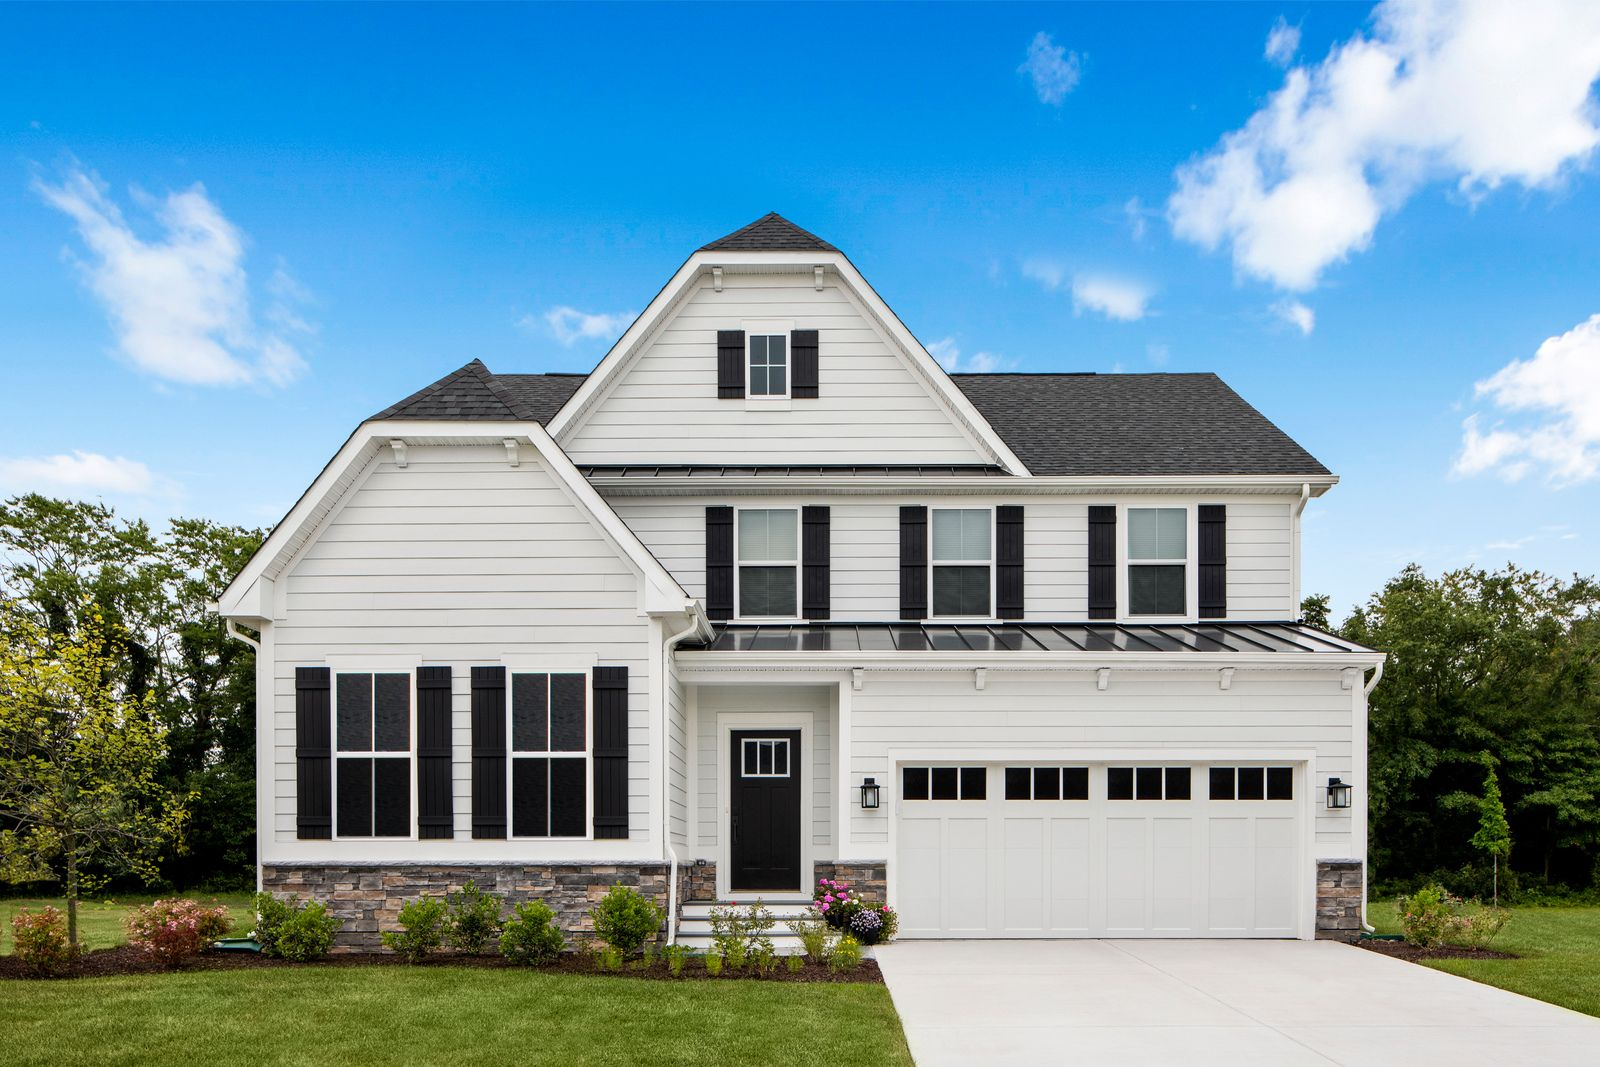 WELCOME TO MIDDLE CREEK PRESERVE:Lowest priced luxury homes in Lewes. Enjoy included upscale finishes, low HOA fees & completed amenities. All homesites can accommodate 3-car garage & basement.Click here to join the VIP List.